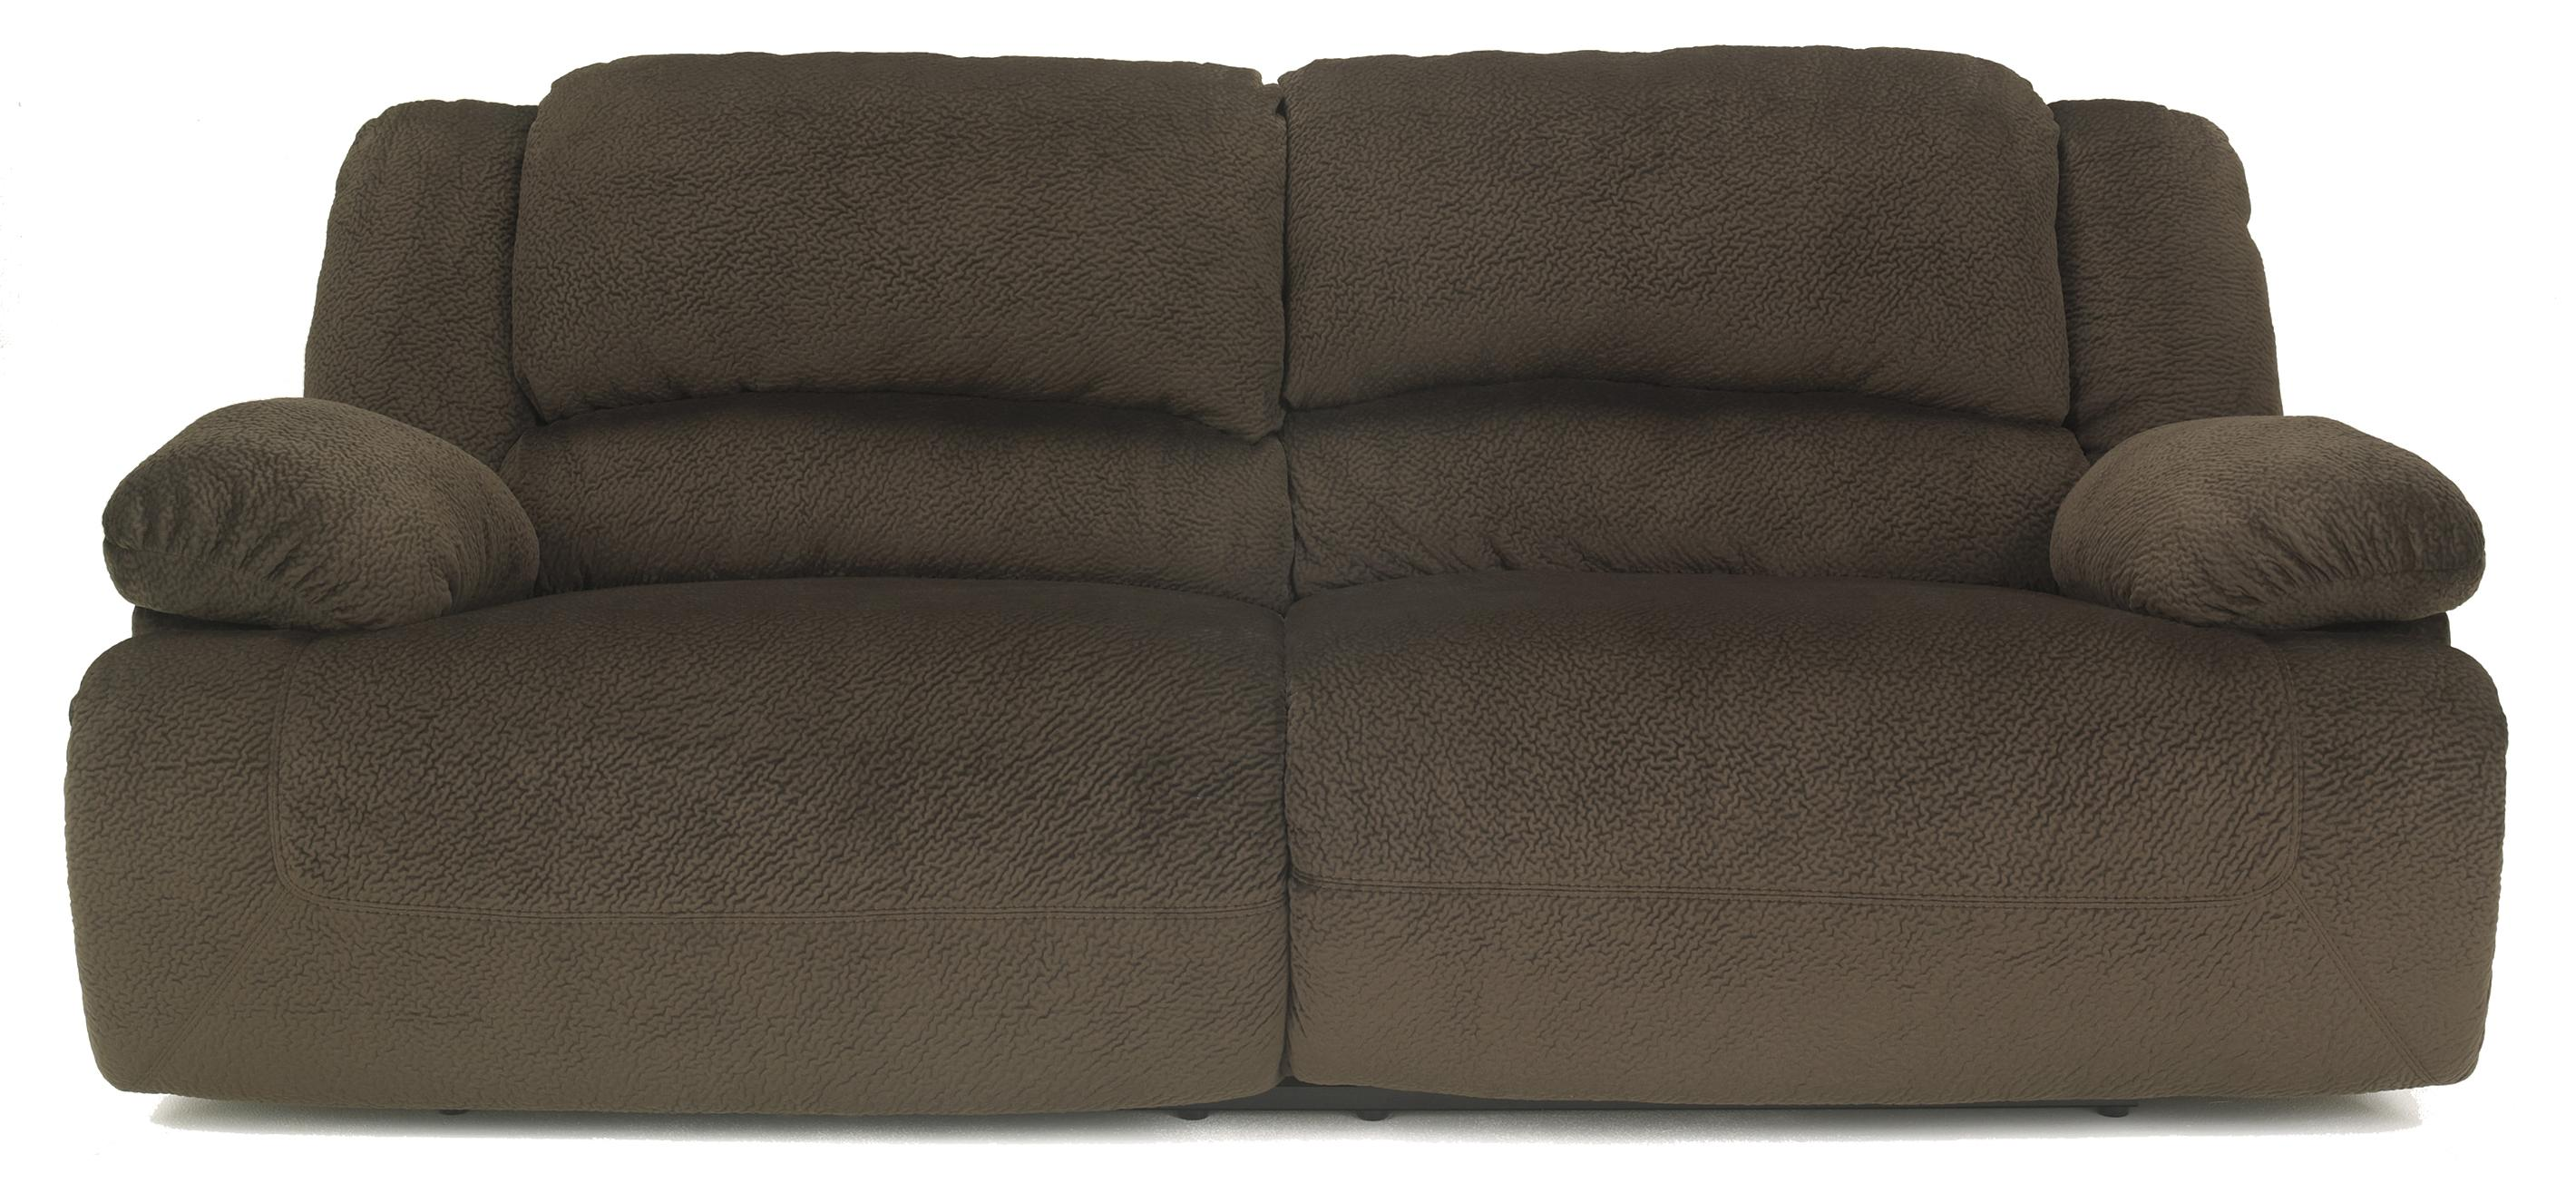 Signature Design by Ashley Toletta - Chocolate 2 Seat Reclining Sofa - Item Number: 5670181